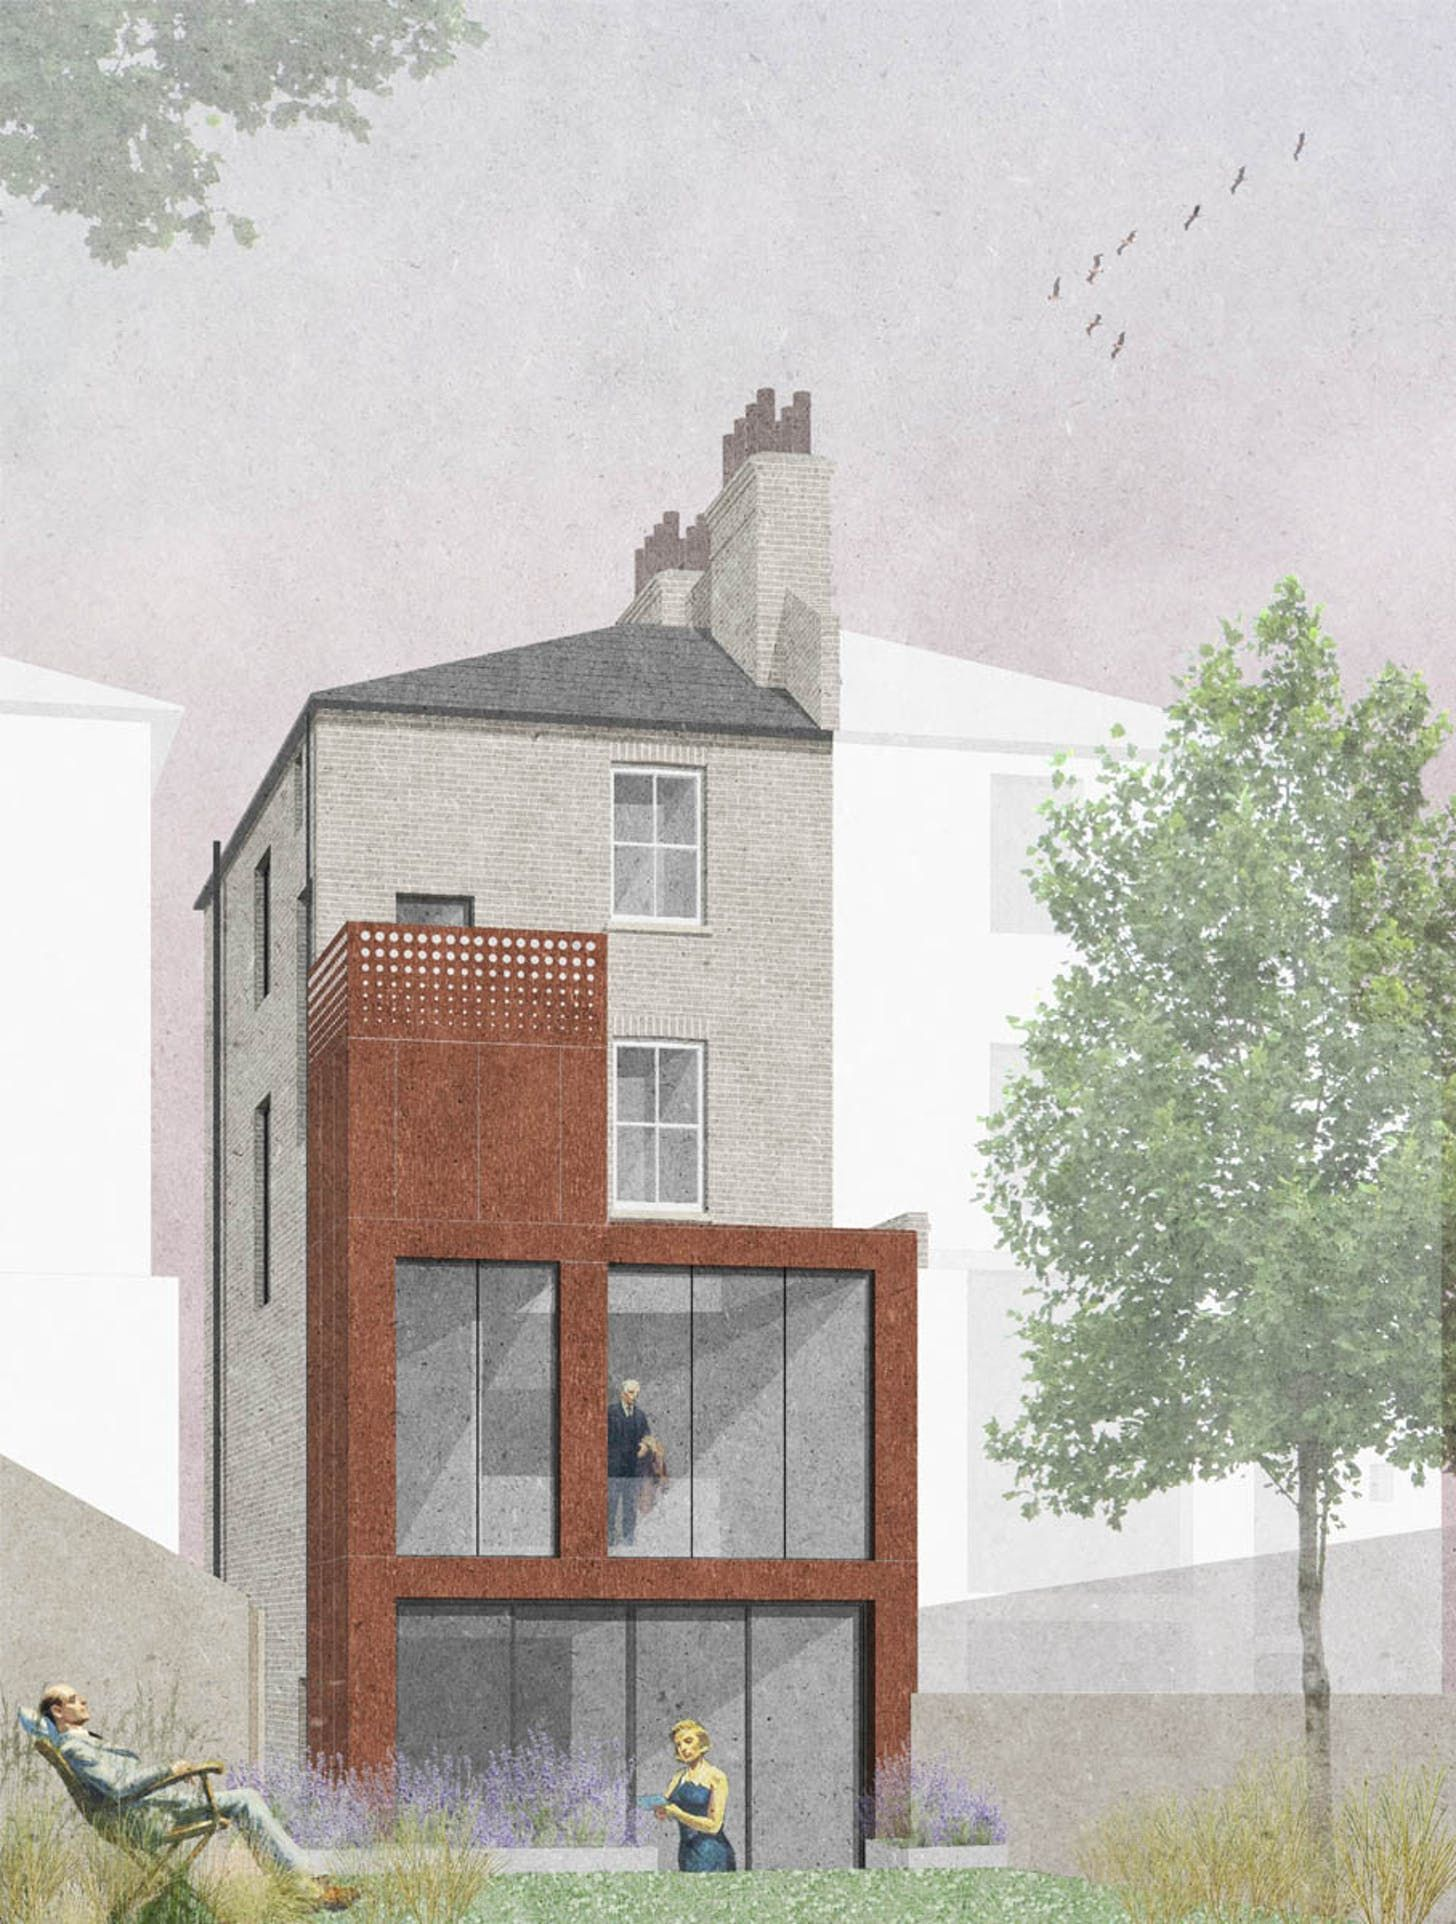 deDraft, a Practice of Three Tucked Away in London Fields, Discuss the Benefits of a Smaller Practice and Taking a More Personal Approach